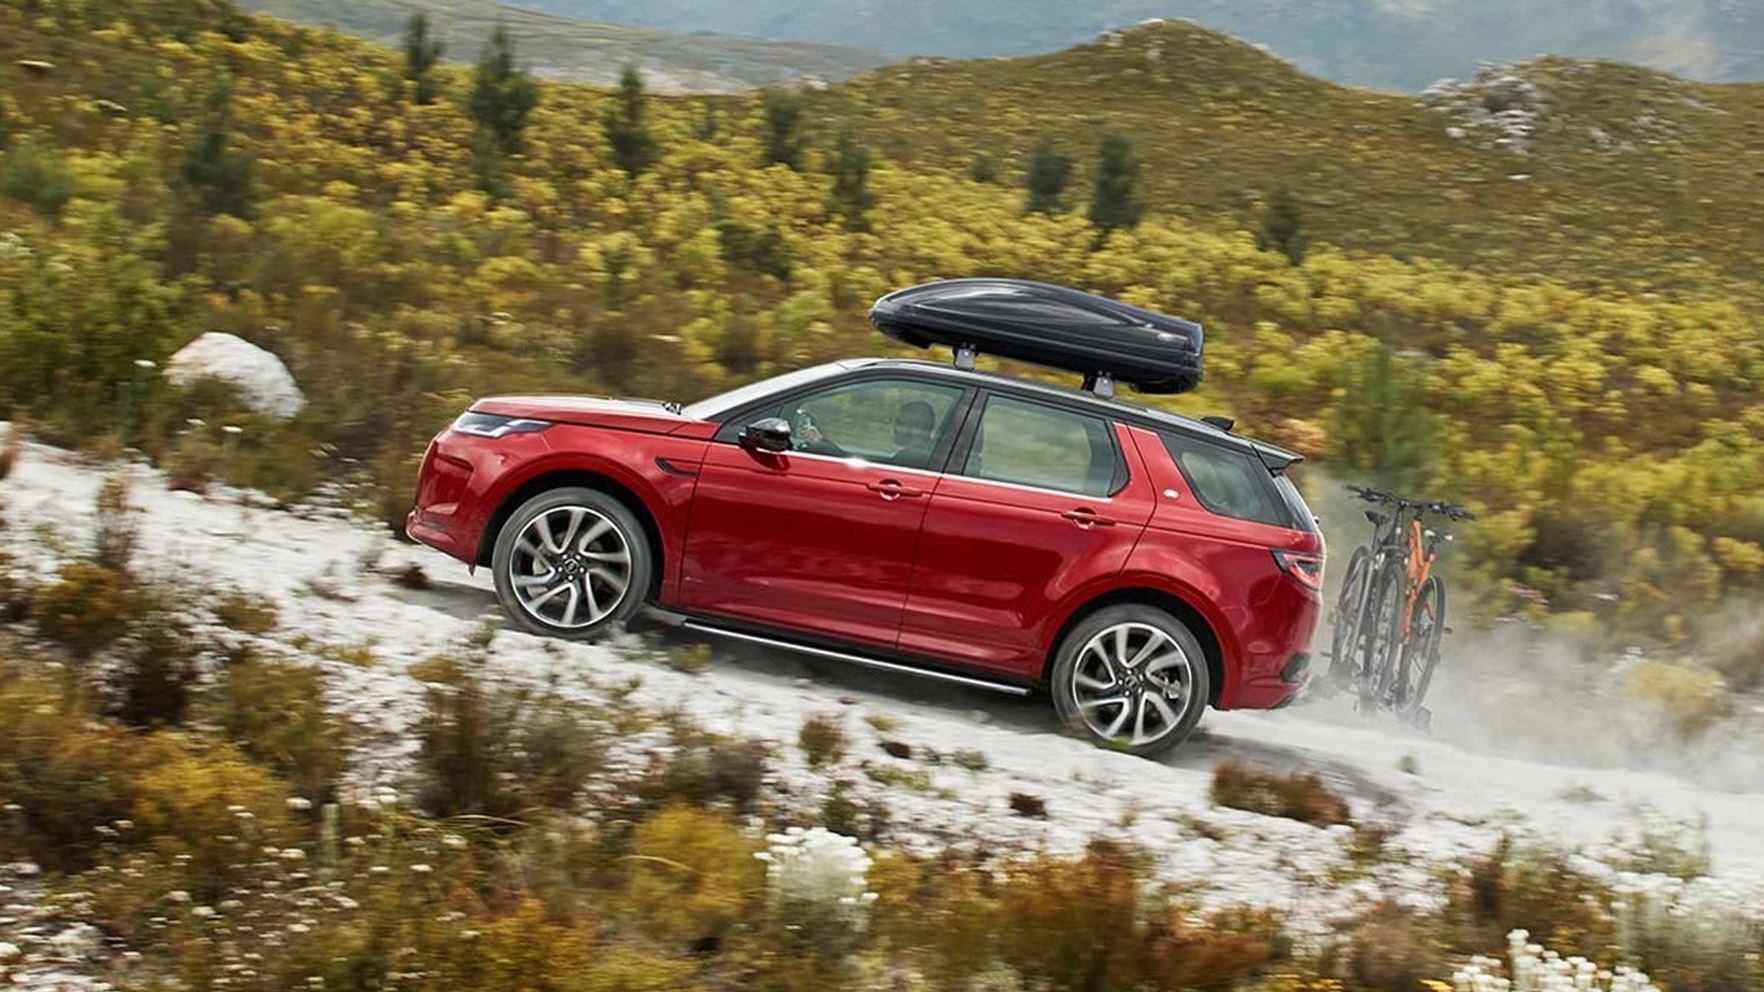 New Discovery Sport